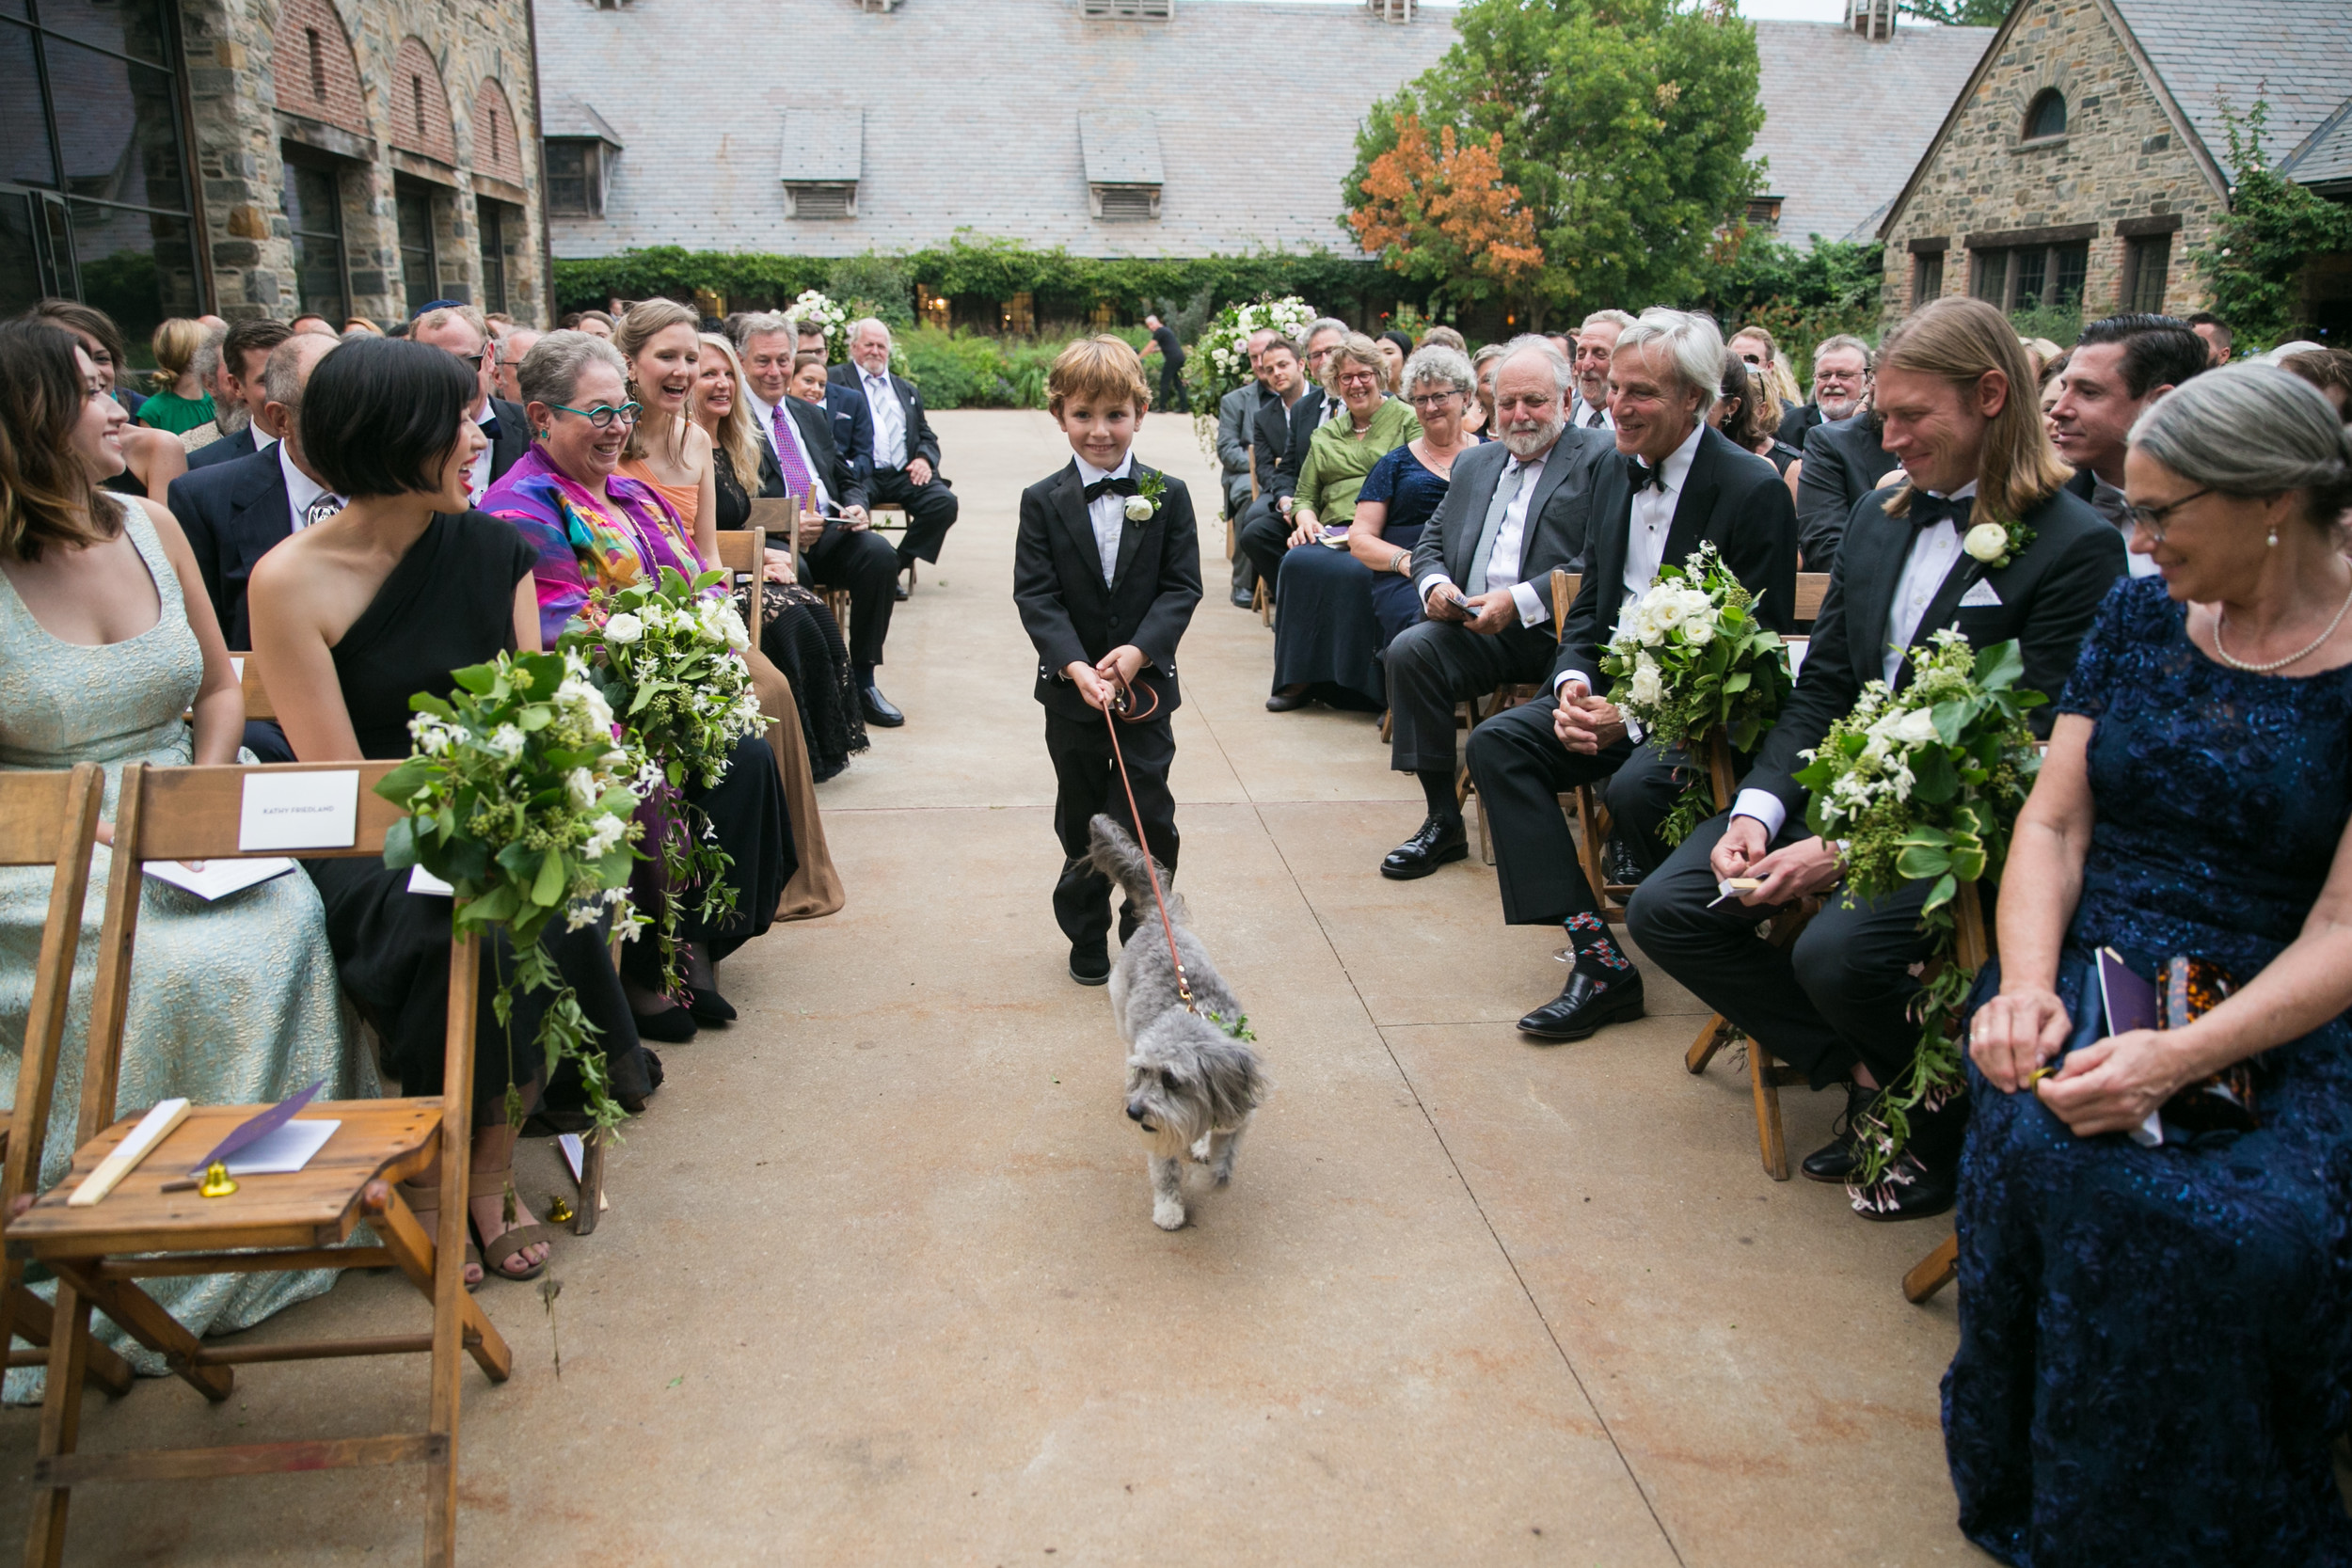 Wyatt Friedland walked Silver down the aisle at a wedding in Tarrytown, thanks to efforts coordinated by Pawfect For You, a dog babysitting business in Malverne.